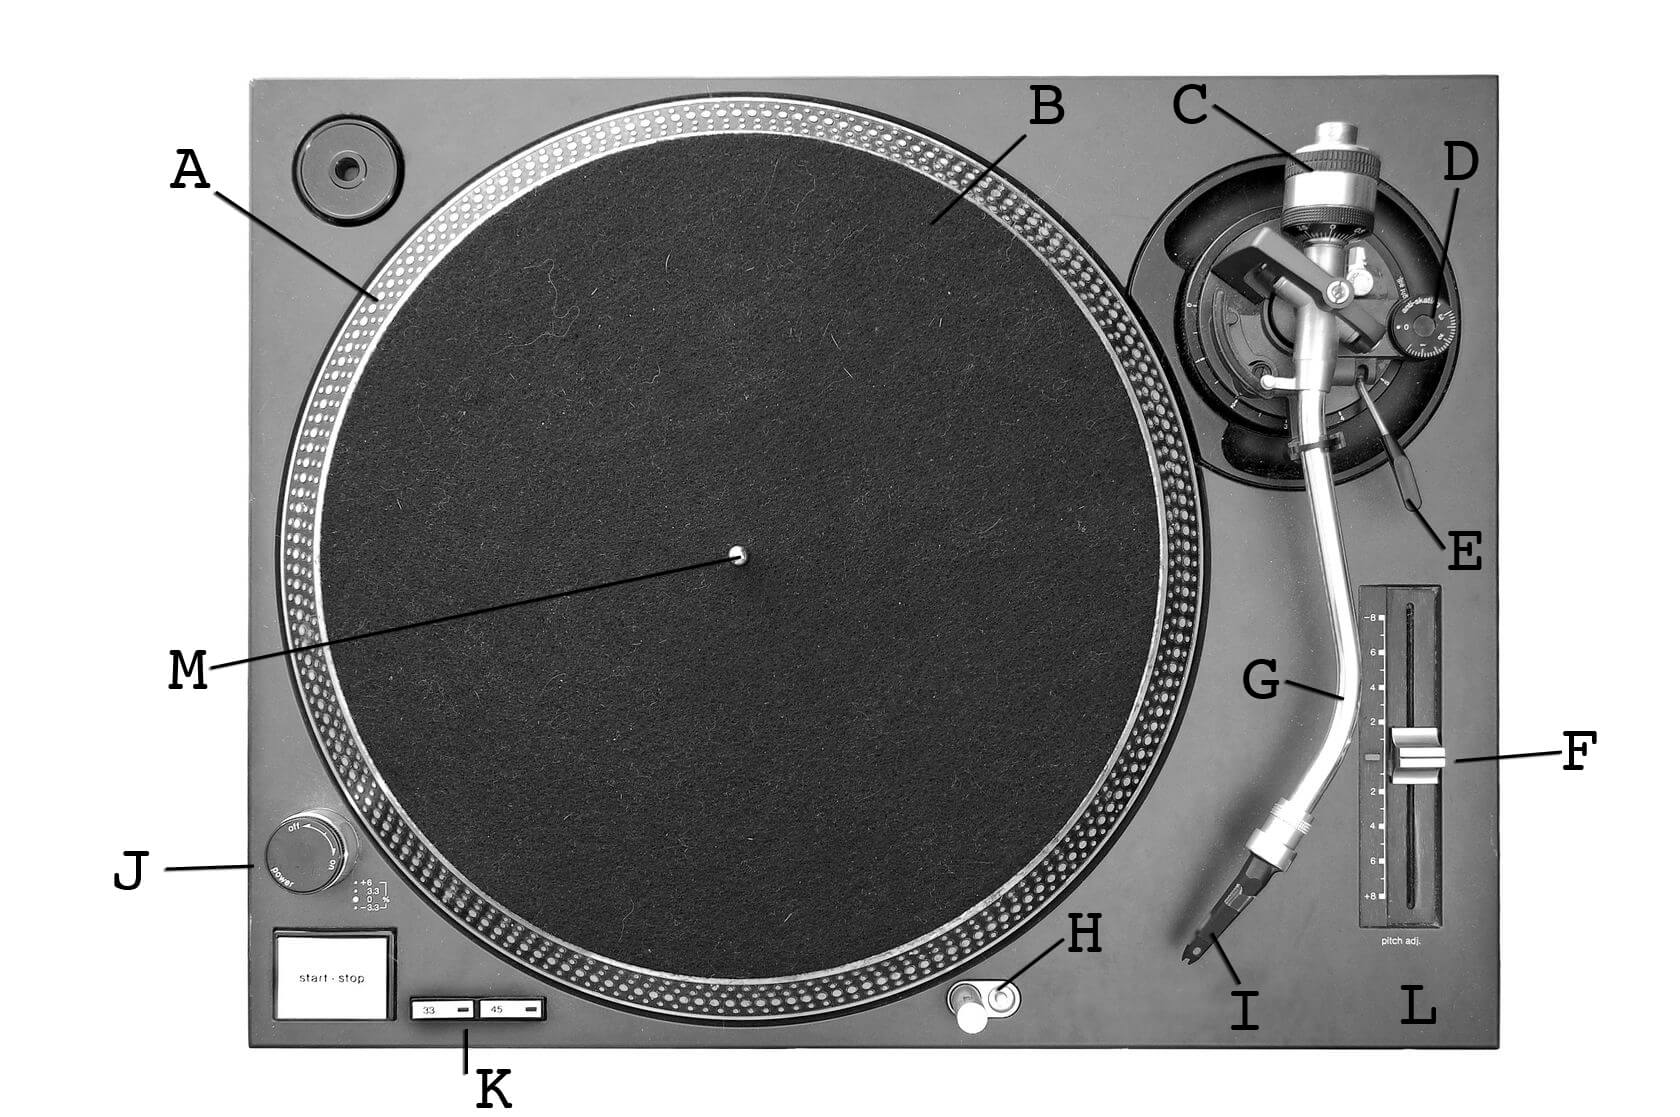 Anatomy of a Turntable on